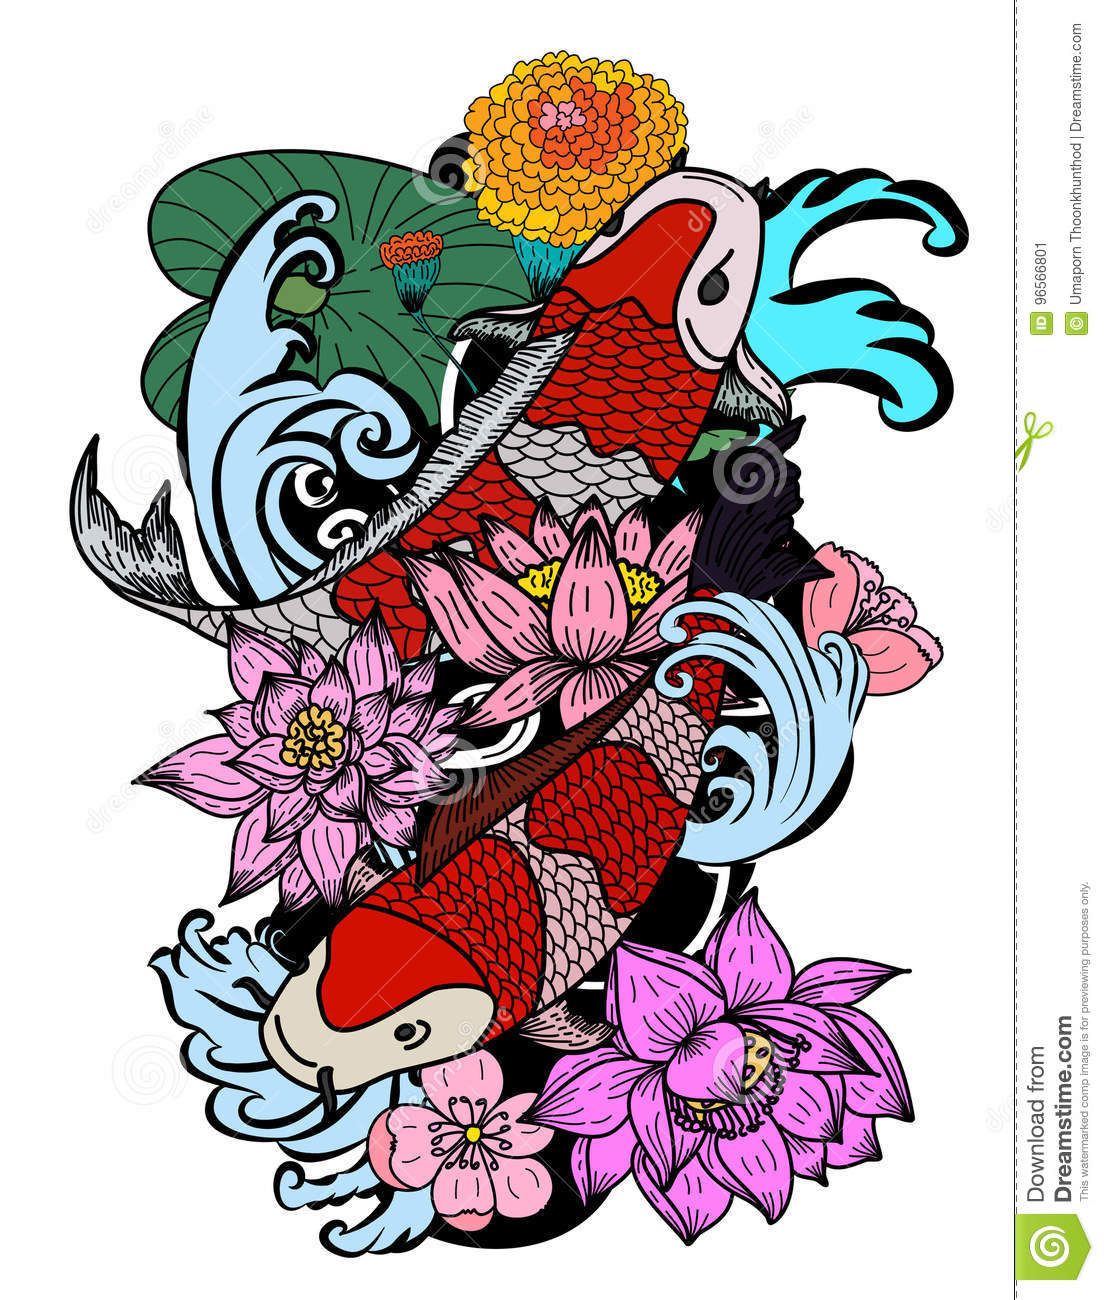 Colorful Koi Fish And Flower Stock Vector - Illustration of drawing ...